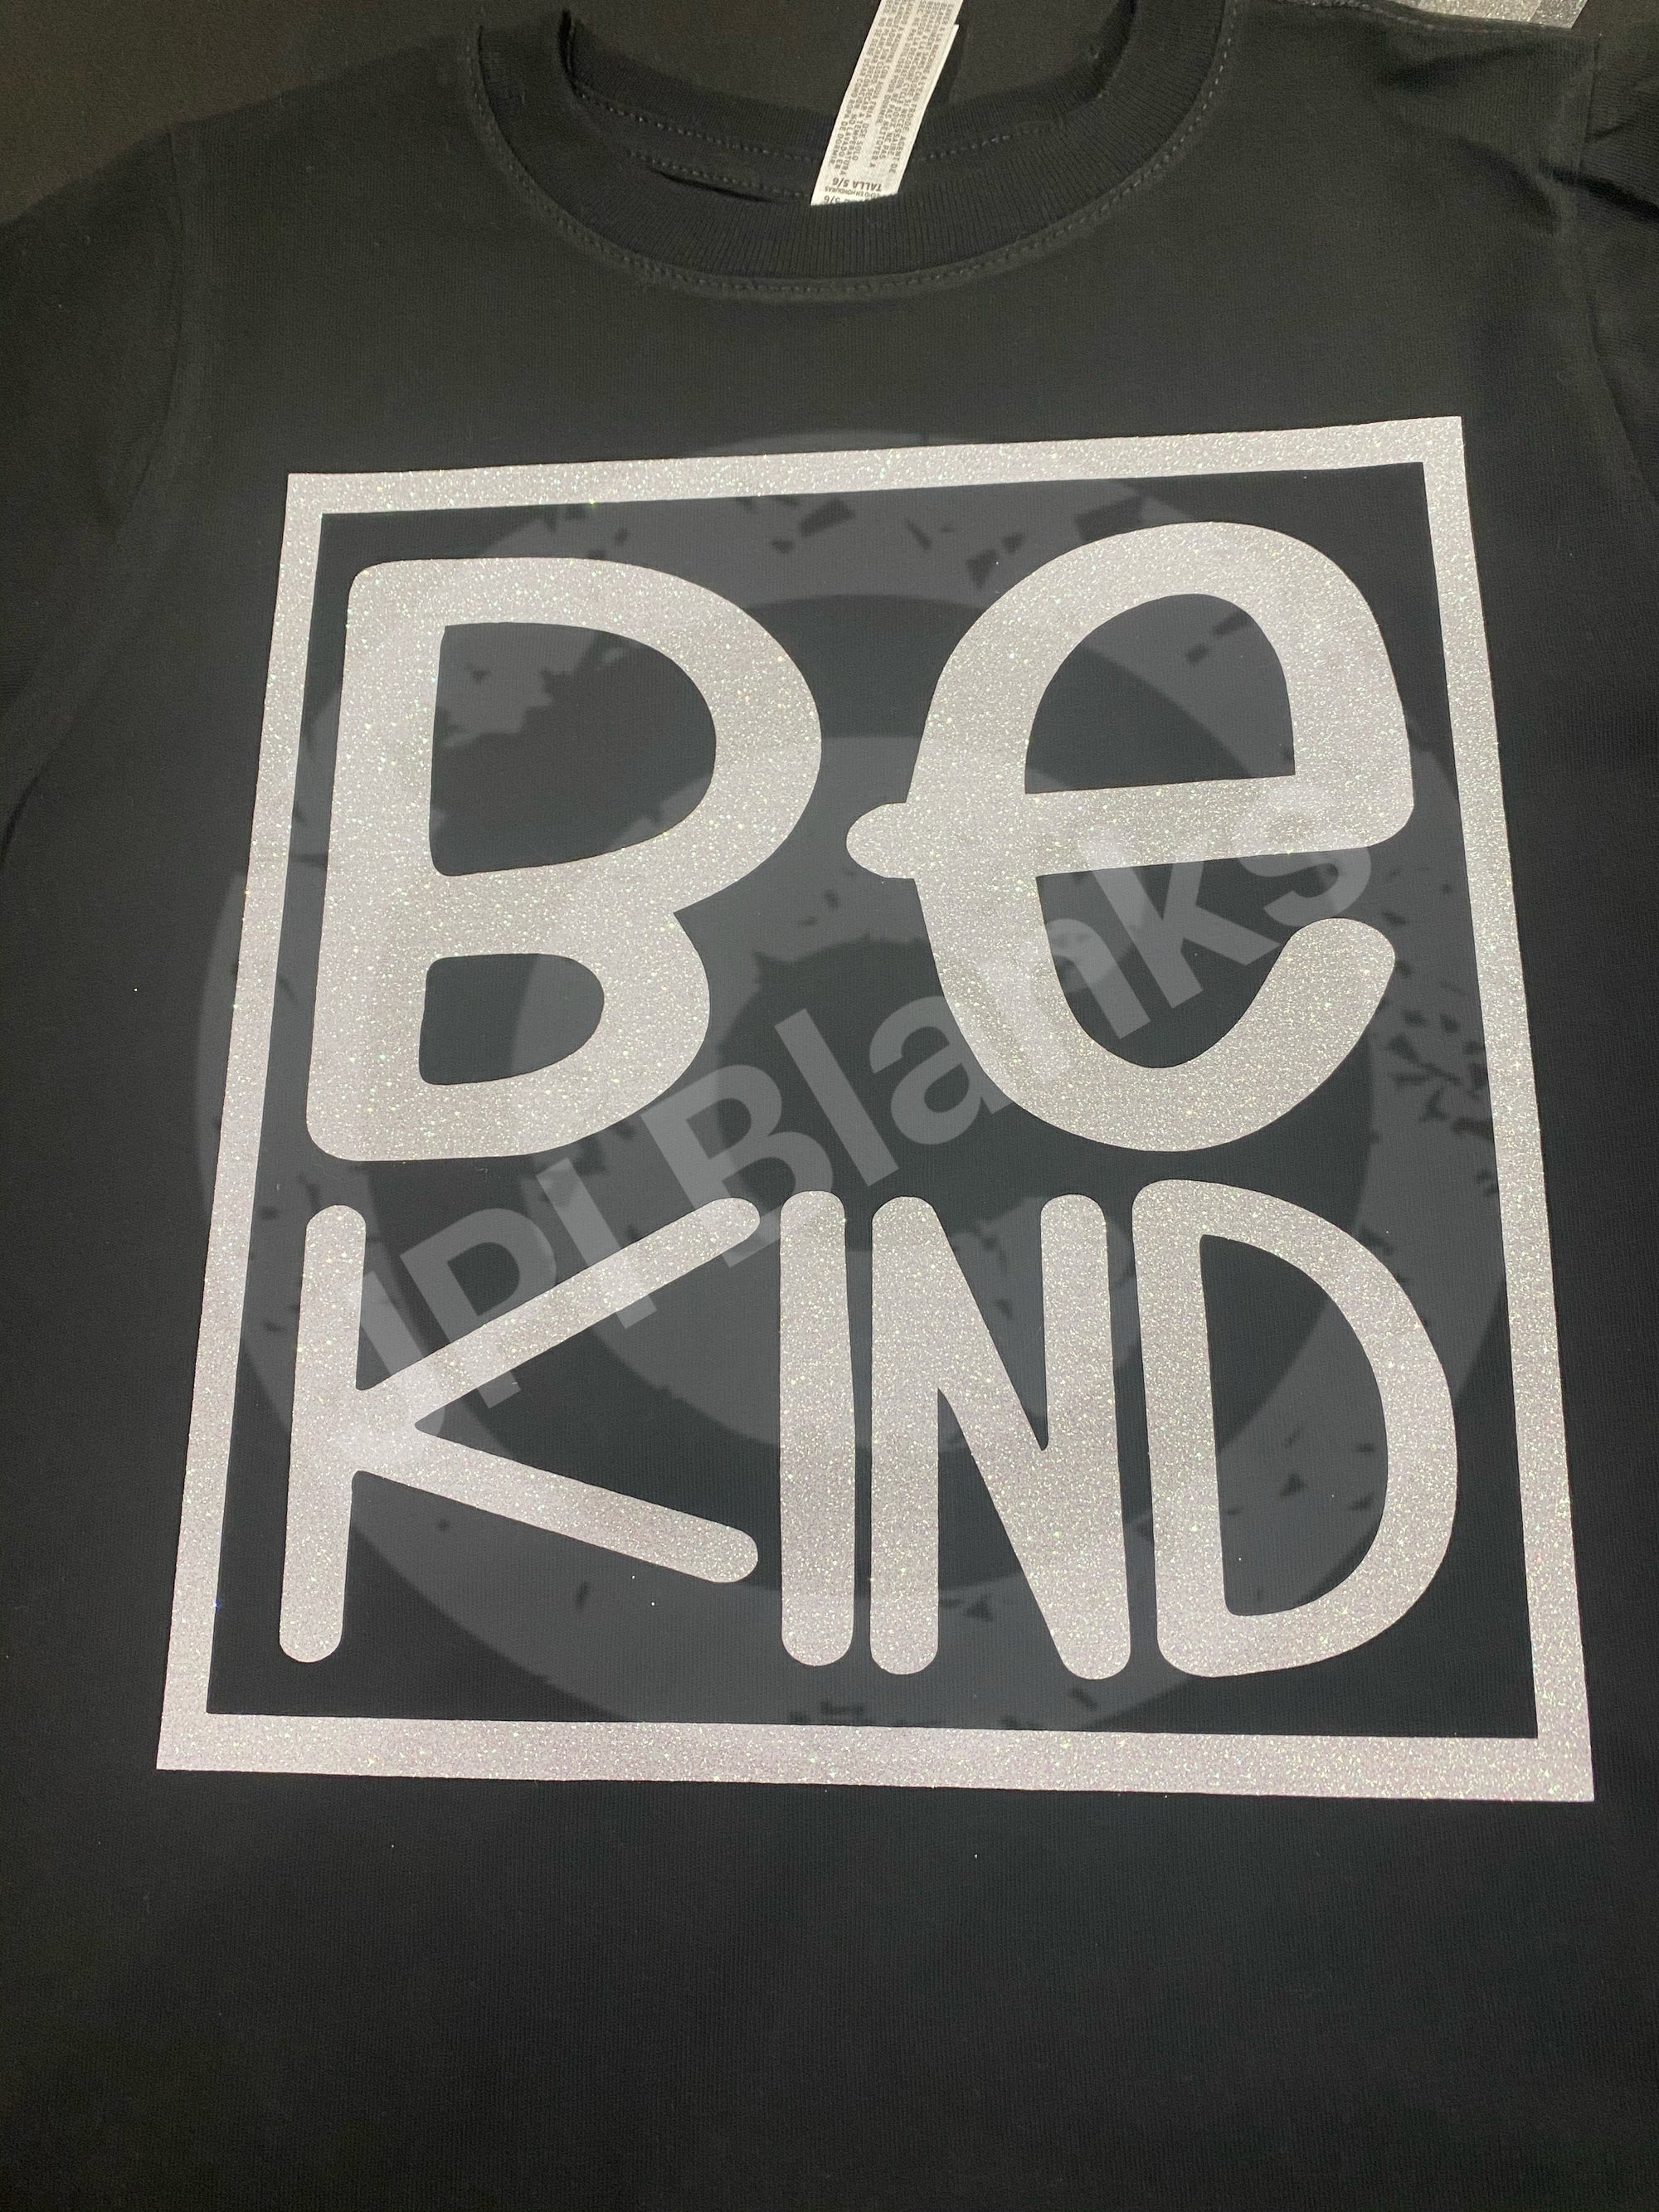 SVG BE KIND SVG - JPIBlanks.com